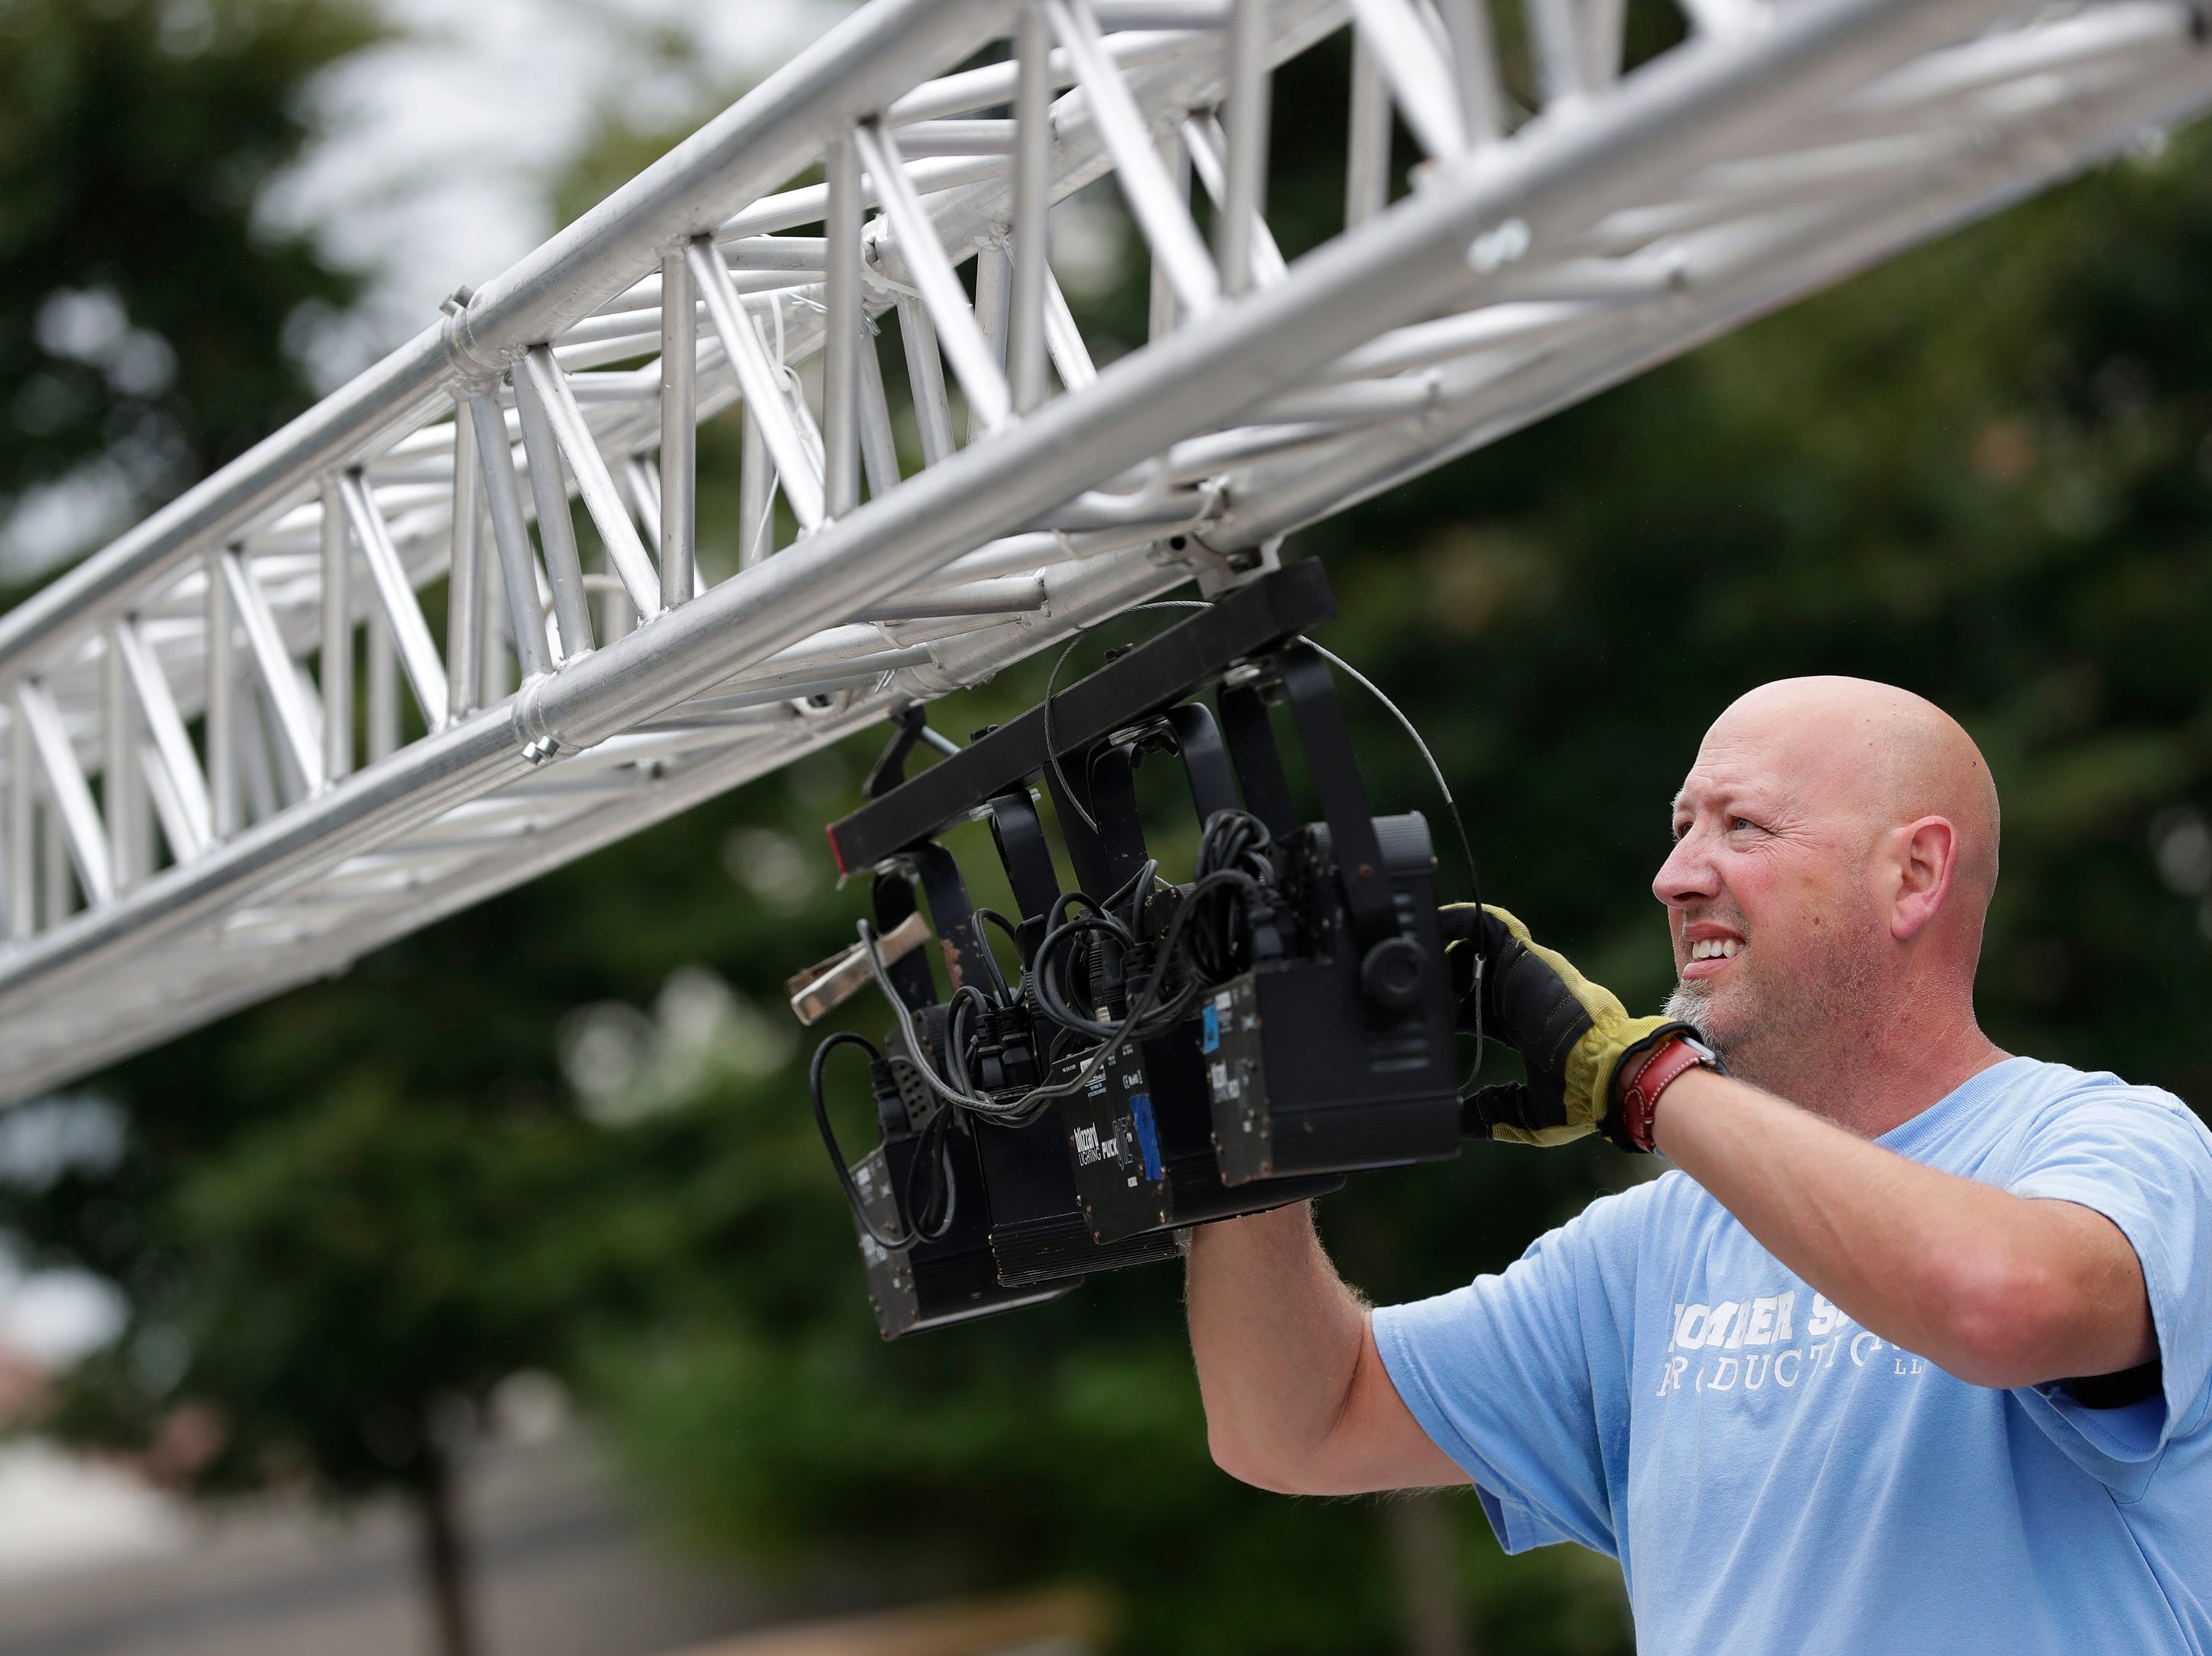 Brian Meixl, an employee with Bomber Sound Producitions out of Appleton, sets up lighting for the Houdini Plaza stage during the Mile of Music Thursday, August 2, 2018, in Appleton, Wis.  Dan Powers/USA TODAY NETWORK-Wisconsin